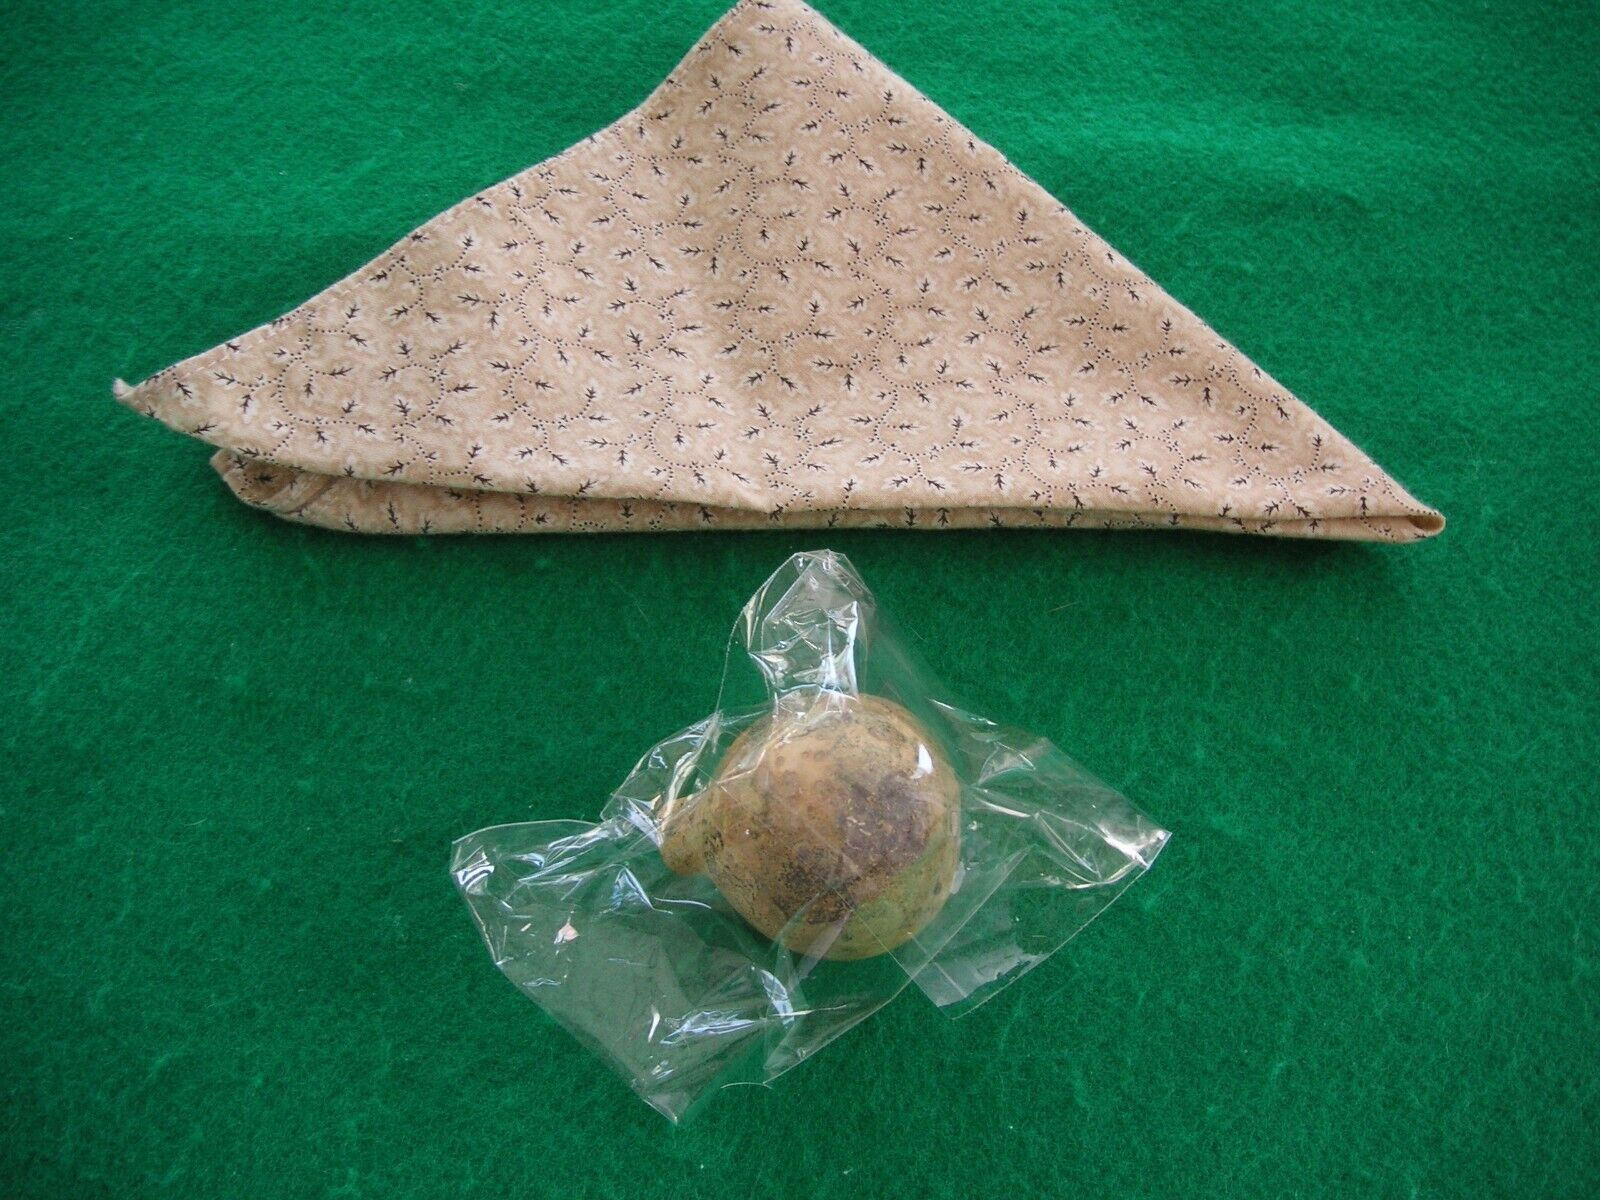 Pleasant Company 1995 Addy s Meet Kerchief And Sealed Gourd.  - $9.00